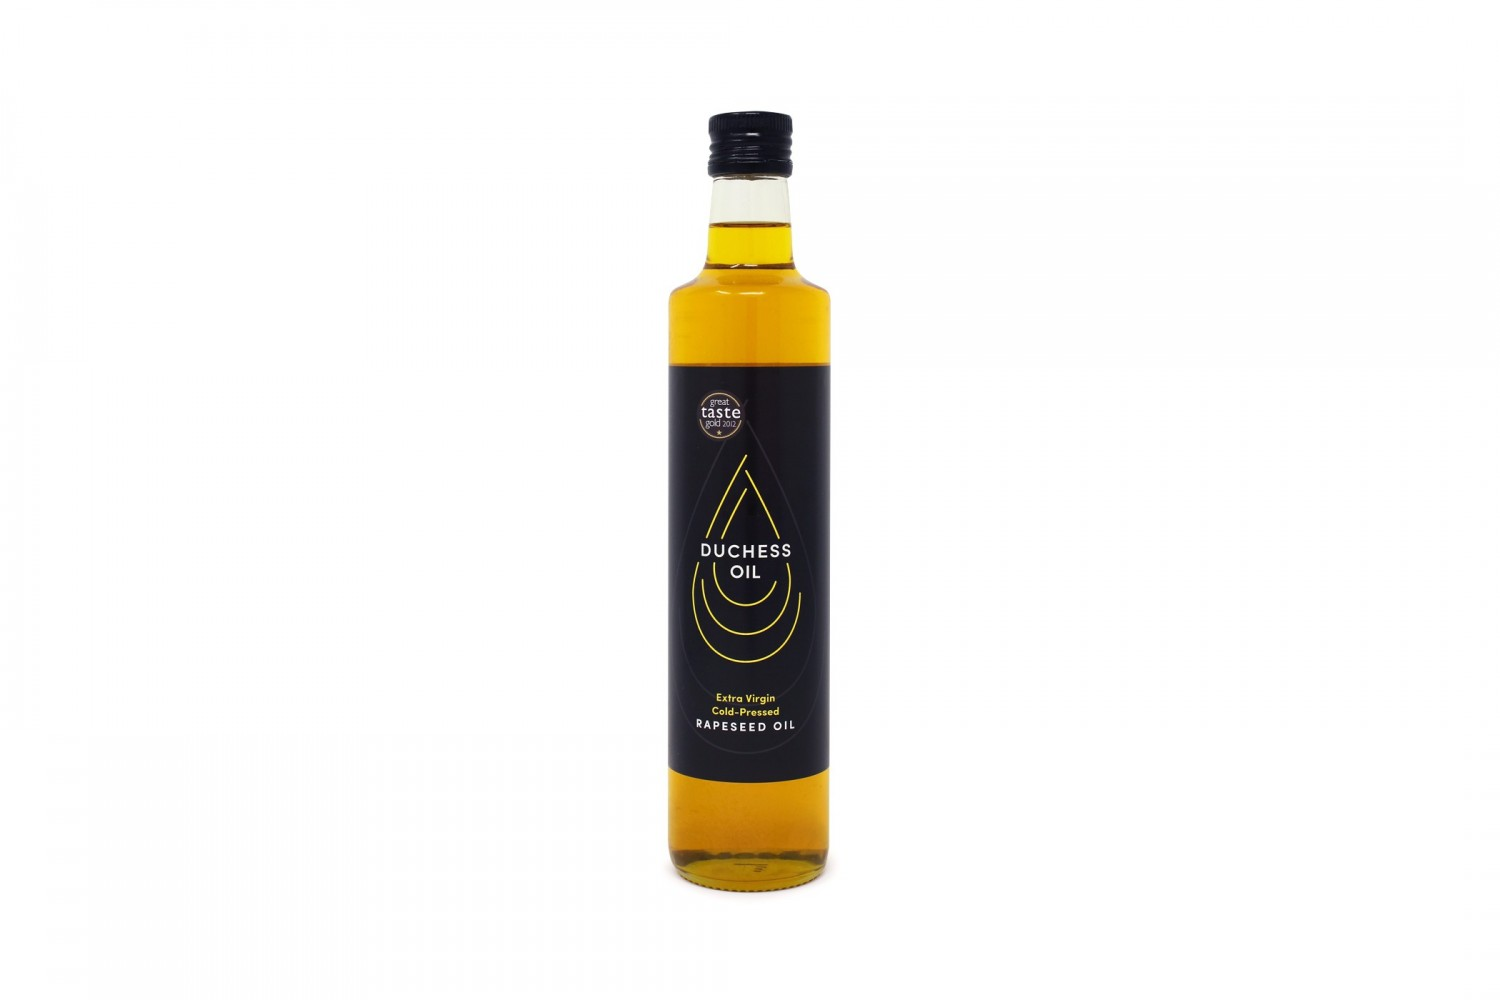 Duchess Rapeseed Oil1500 x 1000 jpeg 41kB